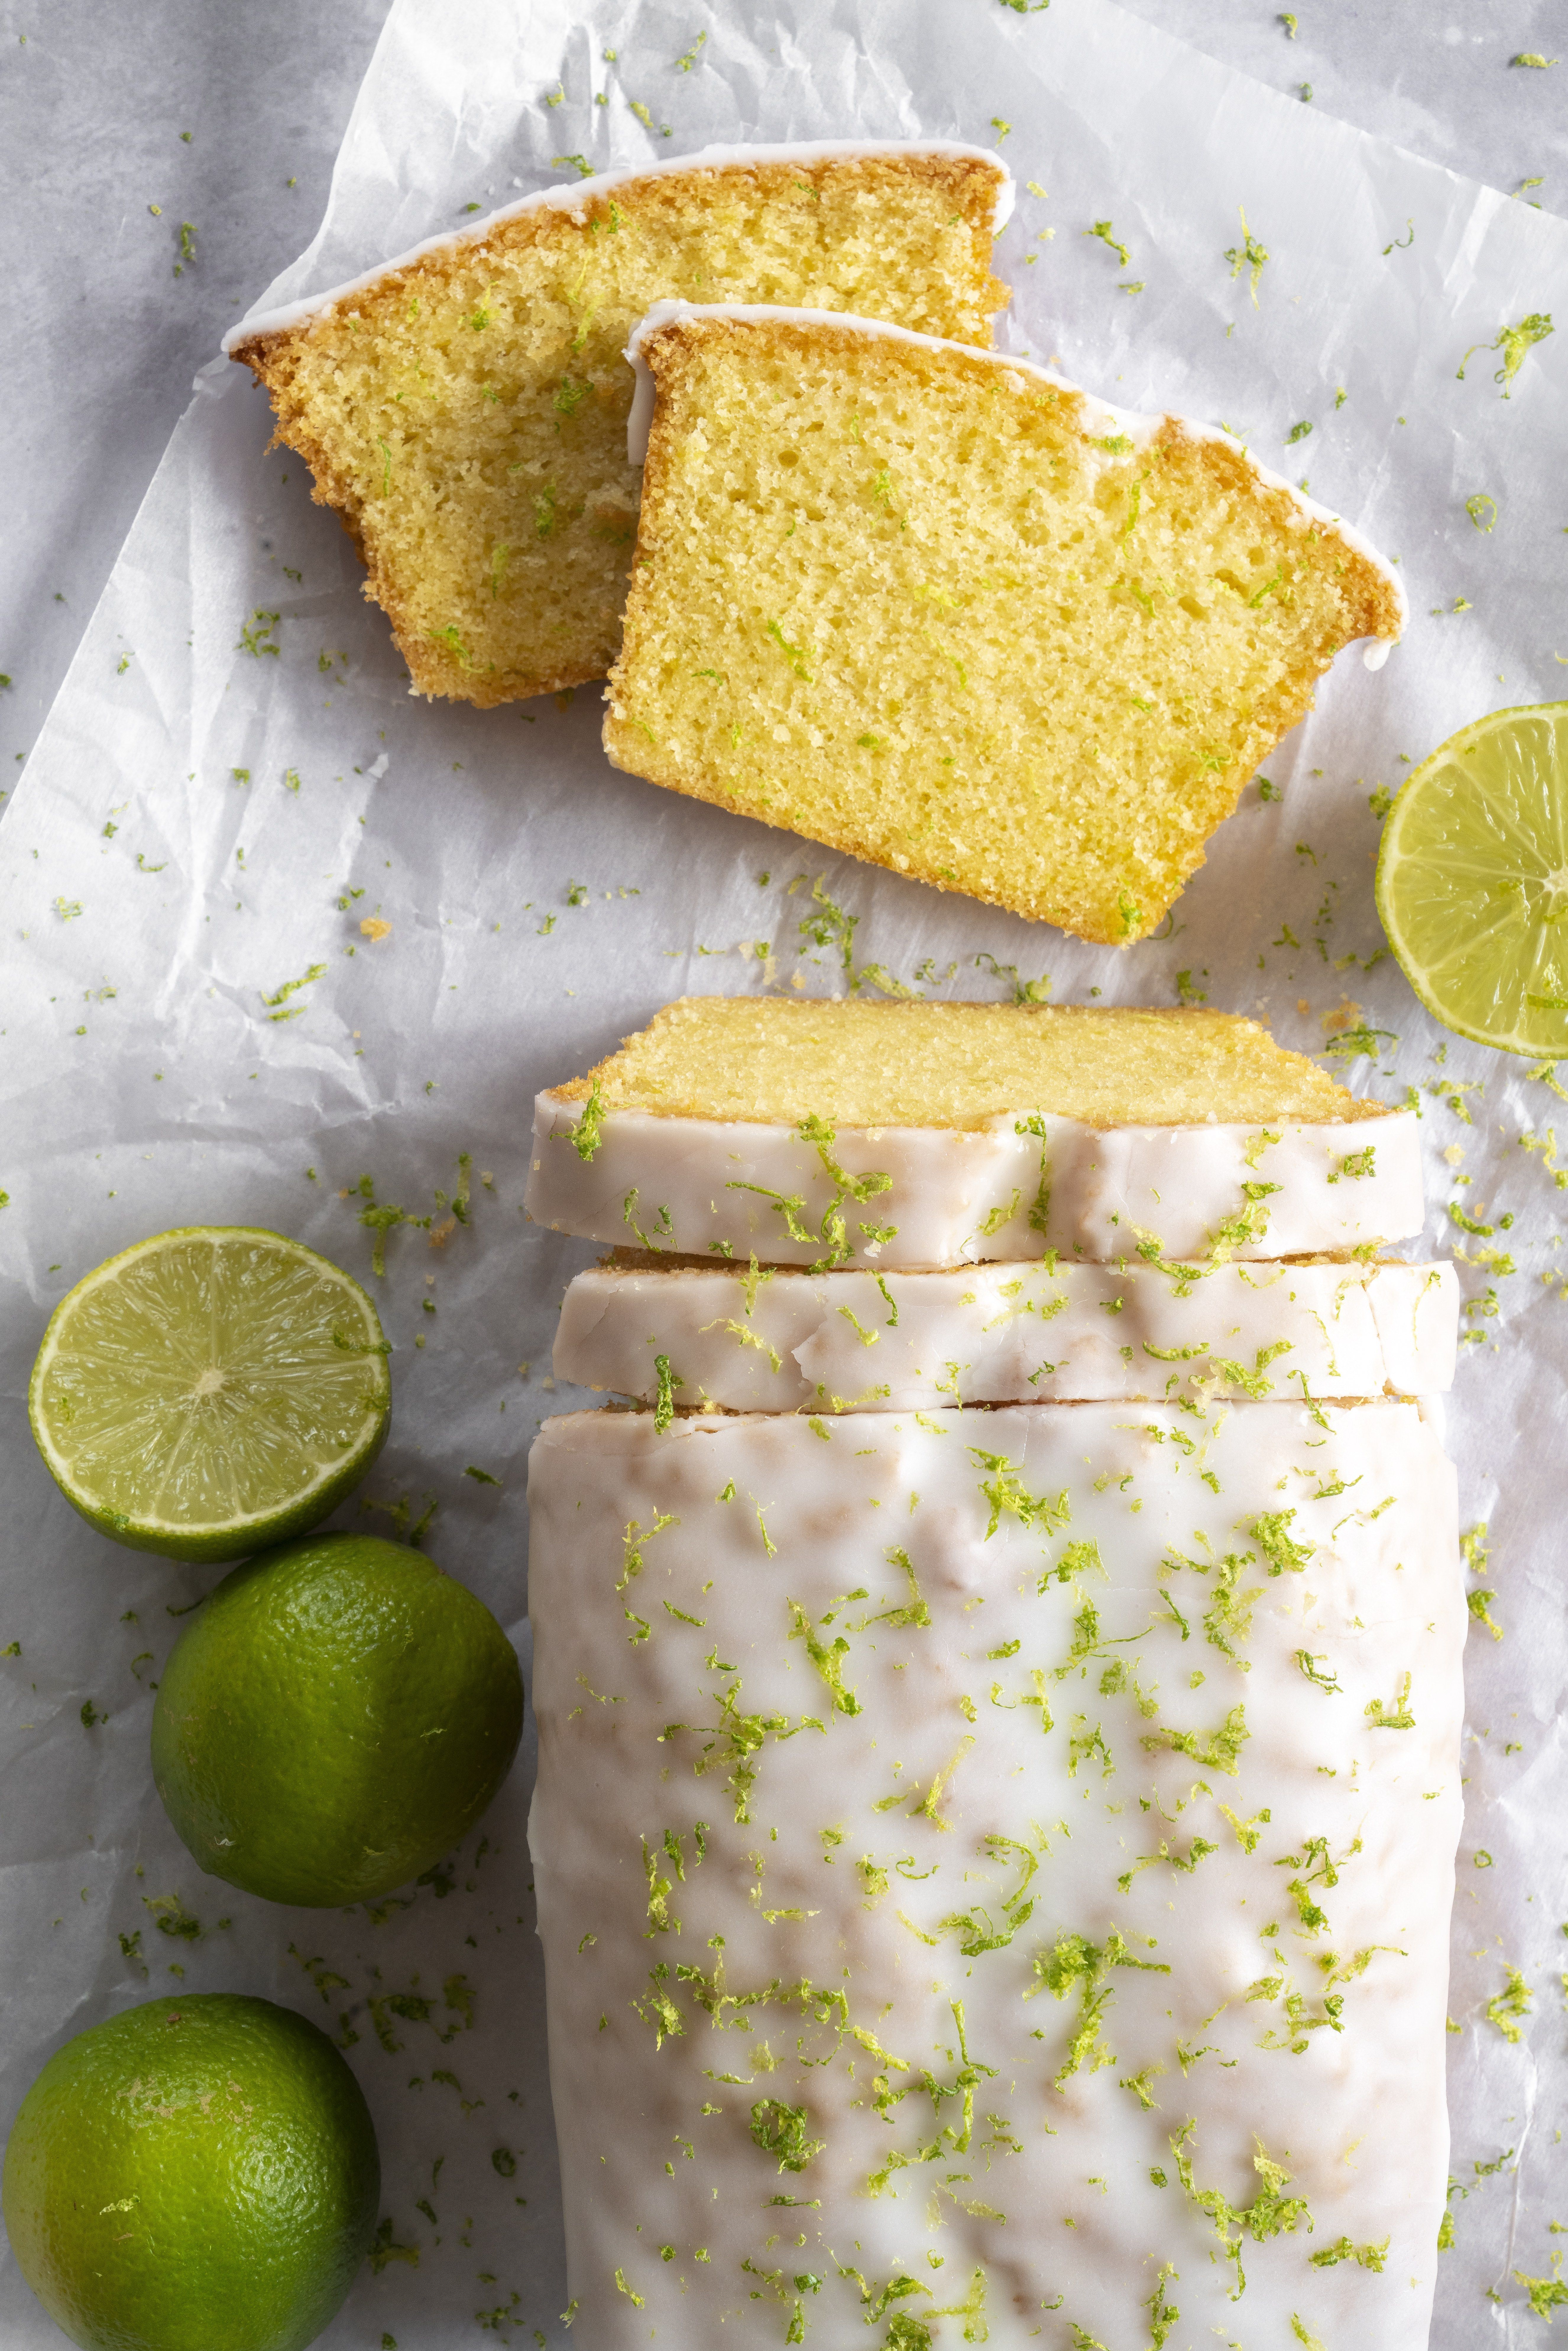 Gin and Tonic Glazed Cake